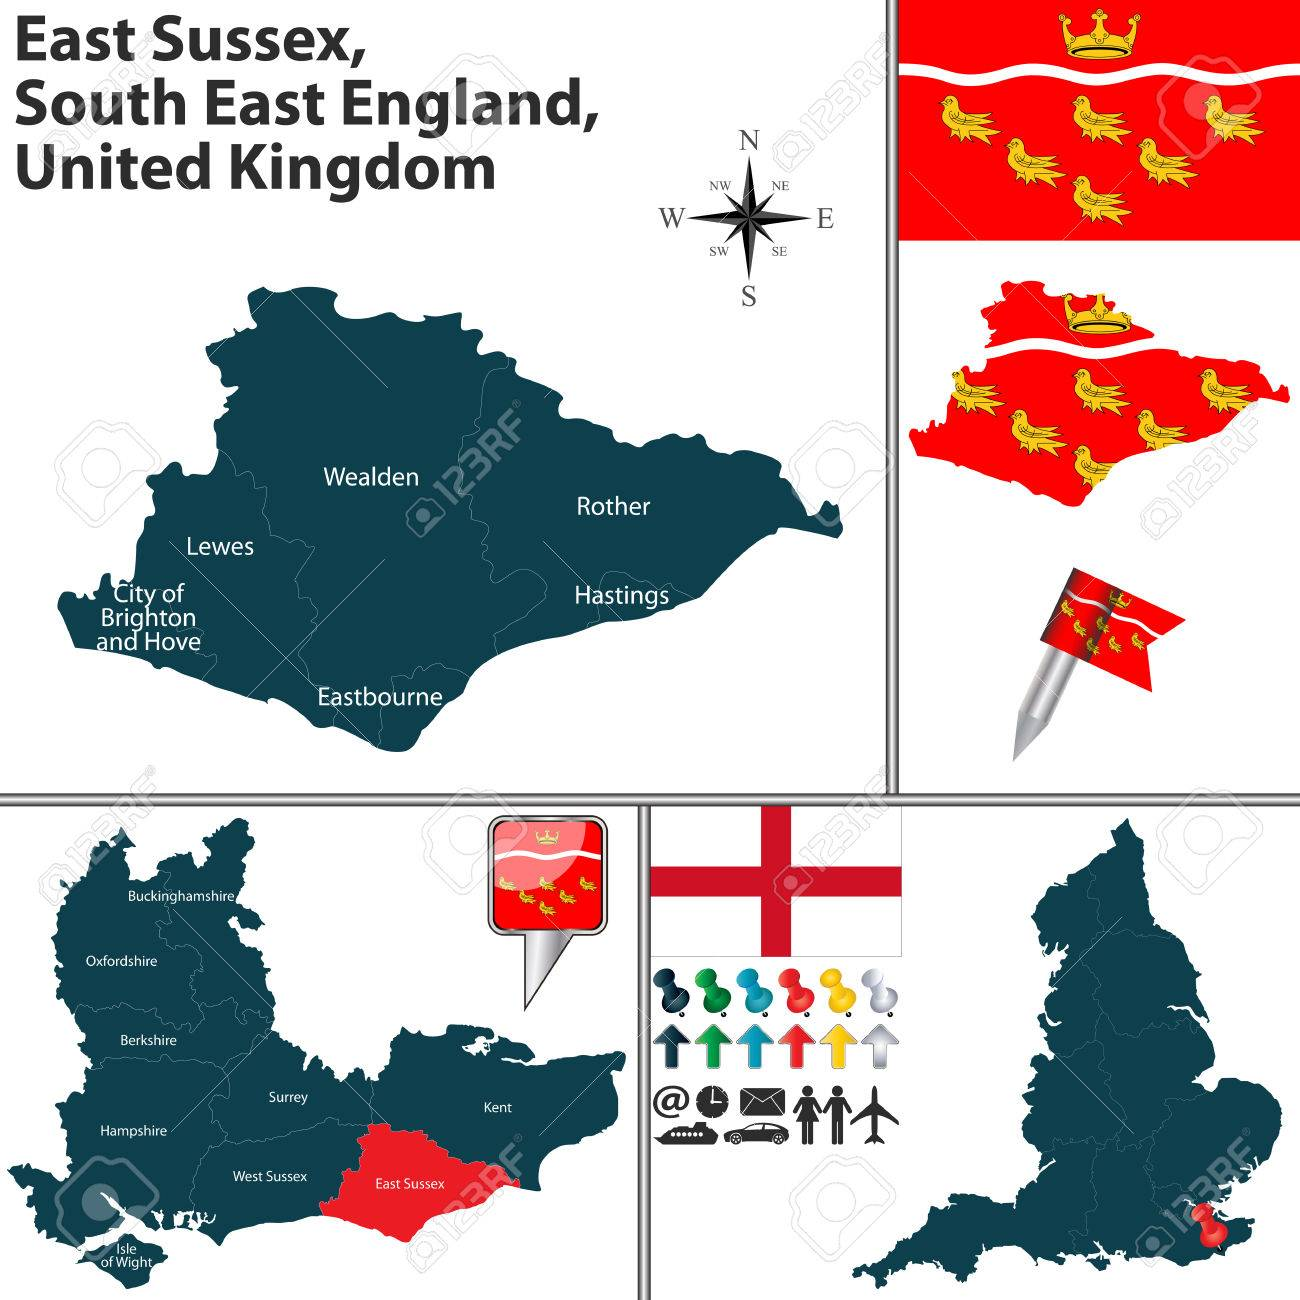 Vector map of East Sus, South East England, United Kingdom.. on hastings england united kingdom, hastings uk map, hastings nz new zealand map, hastings mn on map, hastings nebraska city street map, hastings located on a map,